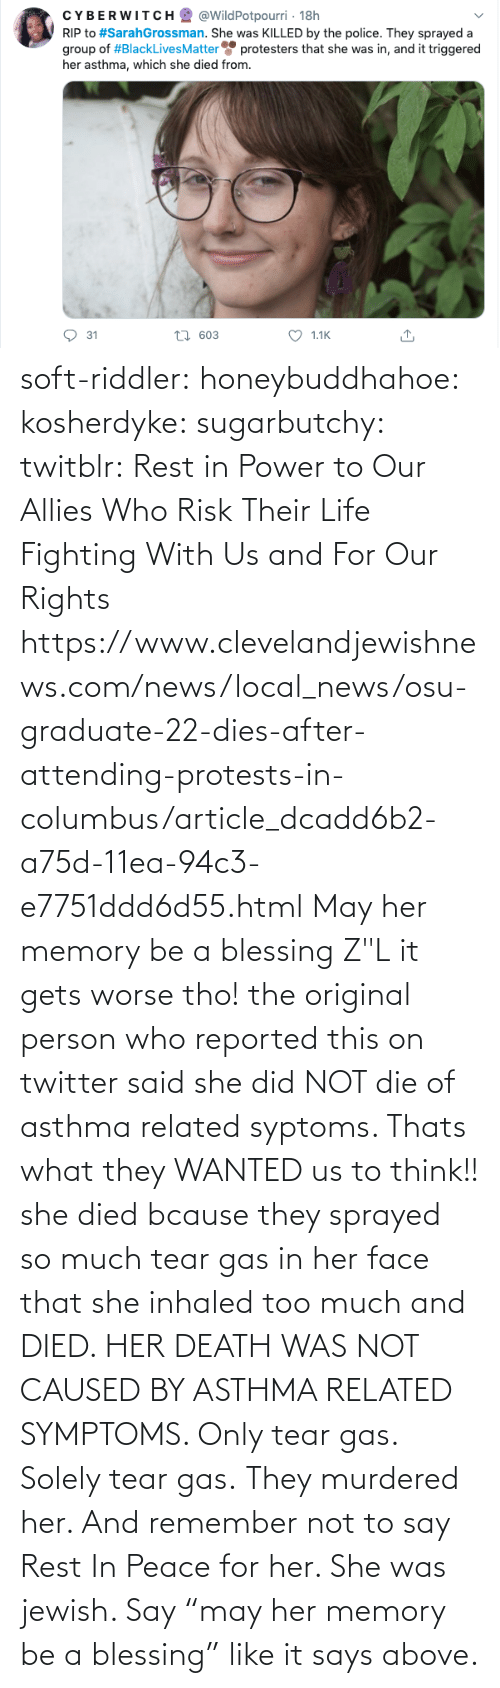 "she: soft-riddler:  honeybuddhahoe:  kosherdyke:  sugarbutchy:  twitblr: Rest in Power to Our Allies Who Risk Their Life Fighting With Us and For Our Rights https://www.clevelandjewishnews.com/news/local_news/osu-graduate-22-dies-after-attending-protests-in-columbus/article_dcadd6b2-a75d-11ea-94c3-e7751ddd6d55.html    May her memory be a blessing Z""L  it gets worse tho! the original person who reported this on twitter said she did NOT die of asthma related syptoms. Thats what they WANTED us to think!! she died bcause they sprayed so much tear gas in her face that she inhaled too much and DIED. HER DEATH WAS NOT CAUSED BY ASTHMA RELATED SYMPTOMS. Only tear gas. Solely tear gas. They murdered her.     And remember not to say Rest In Peace for her. She was jewish. Say ""may her memory be a blessing"" like it says above."